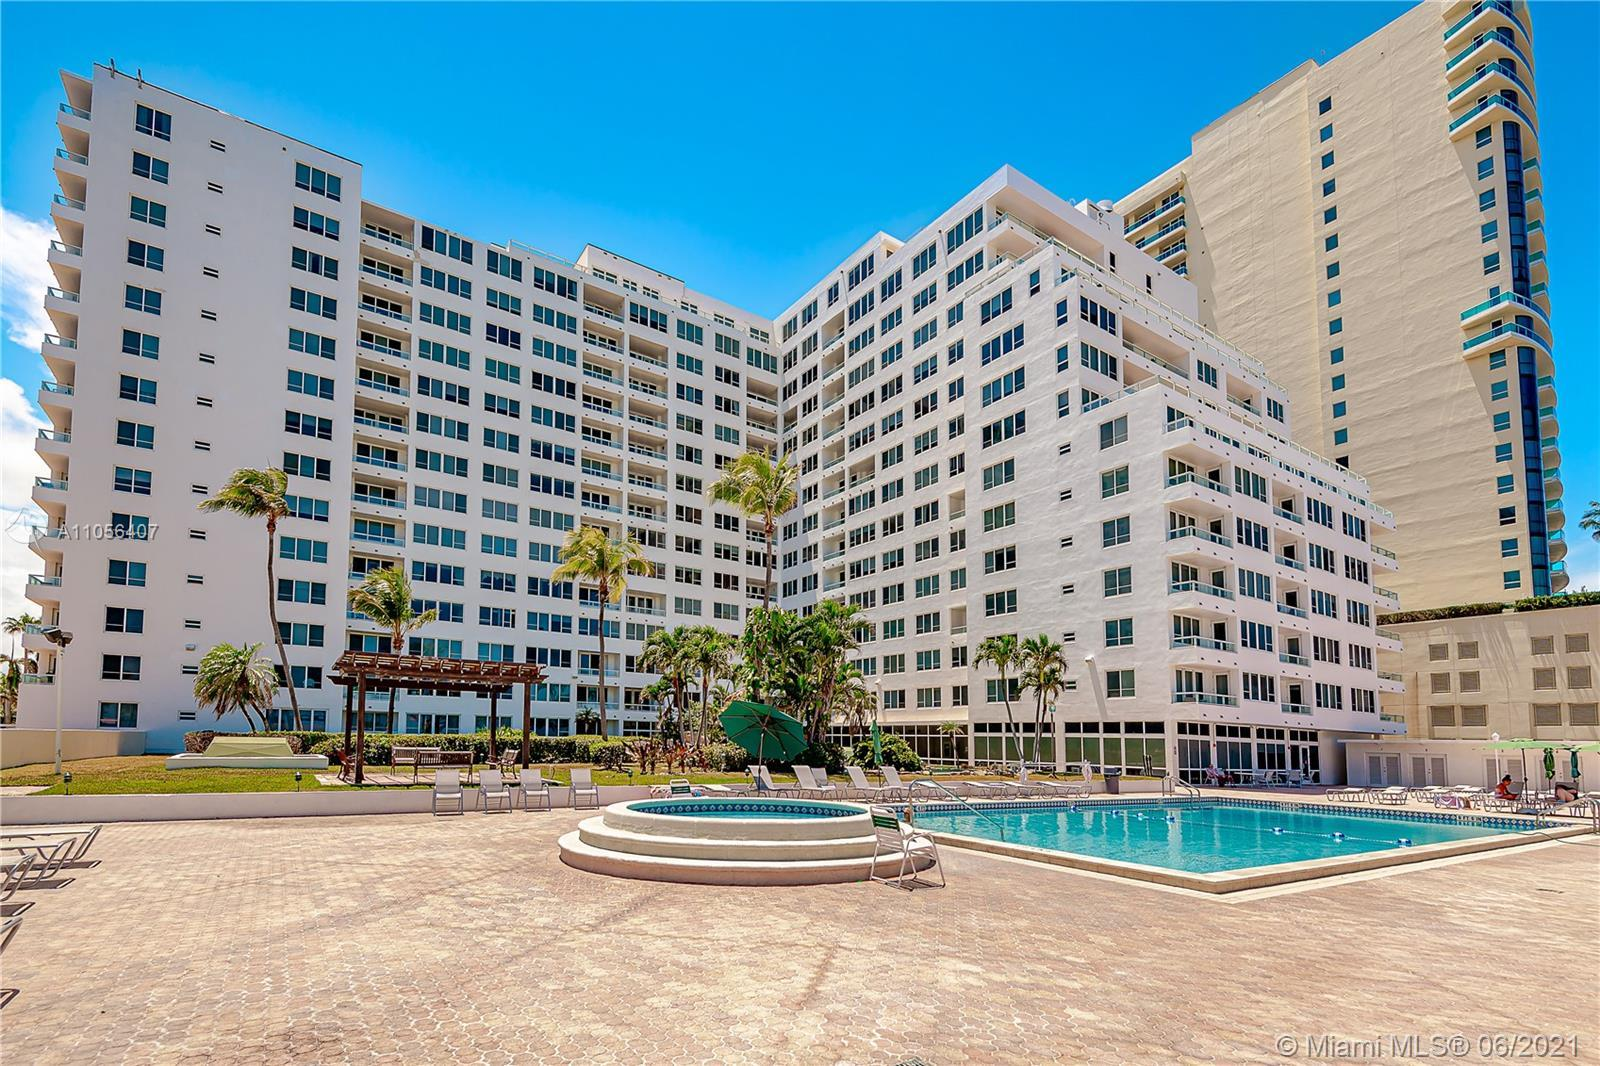 Great Investment Property and an opportunity for buyers. Come and see this Beautiful High Rise Condo